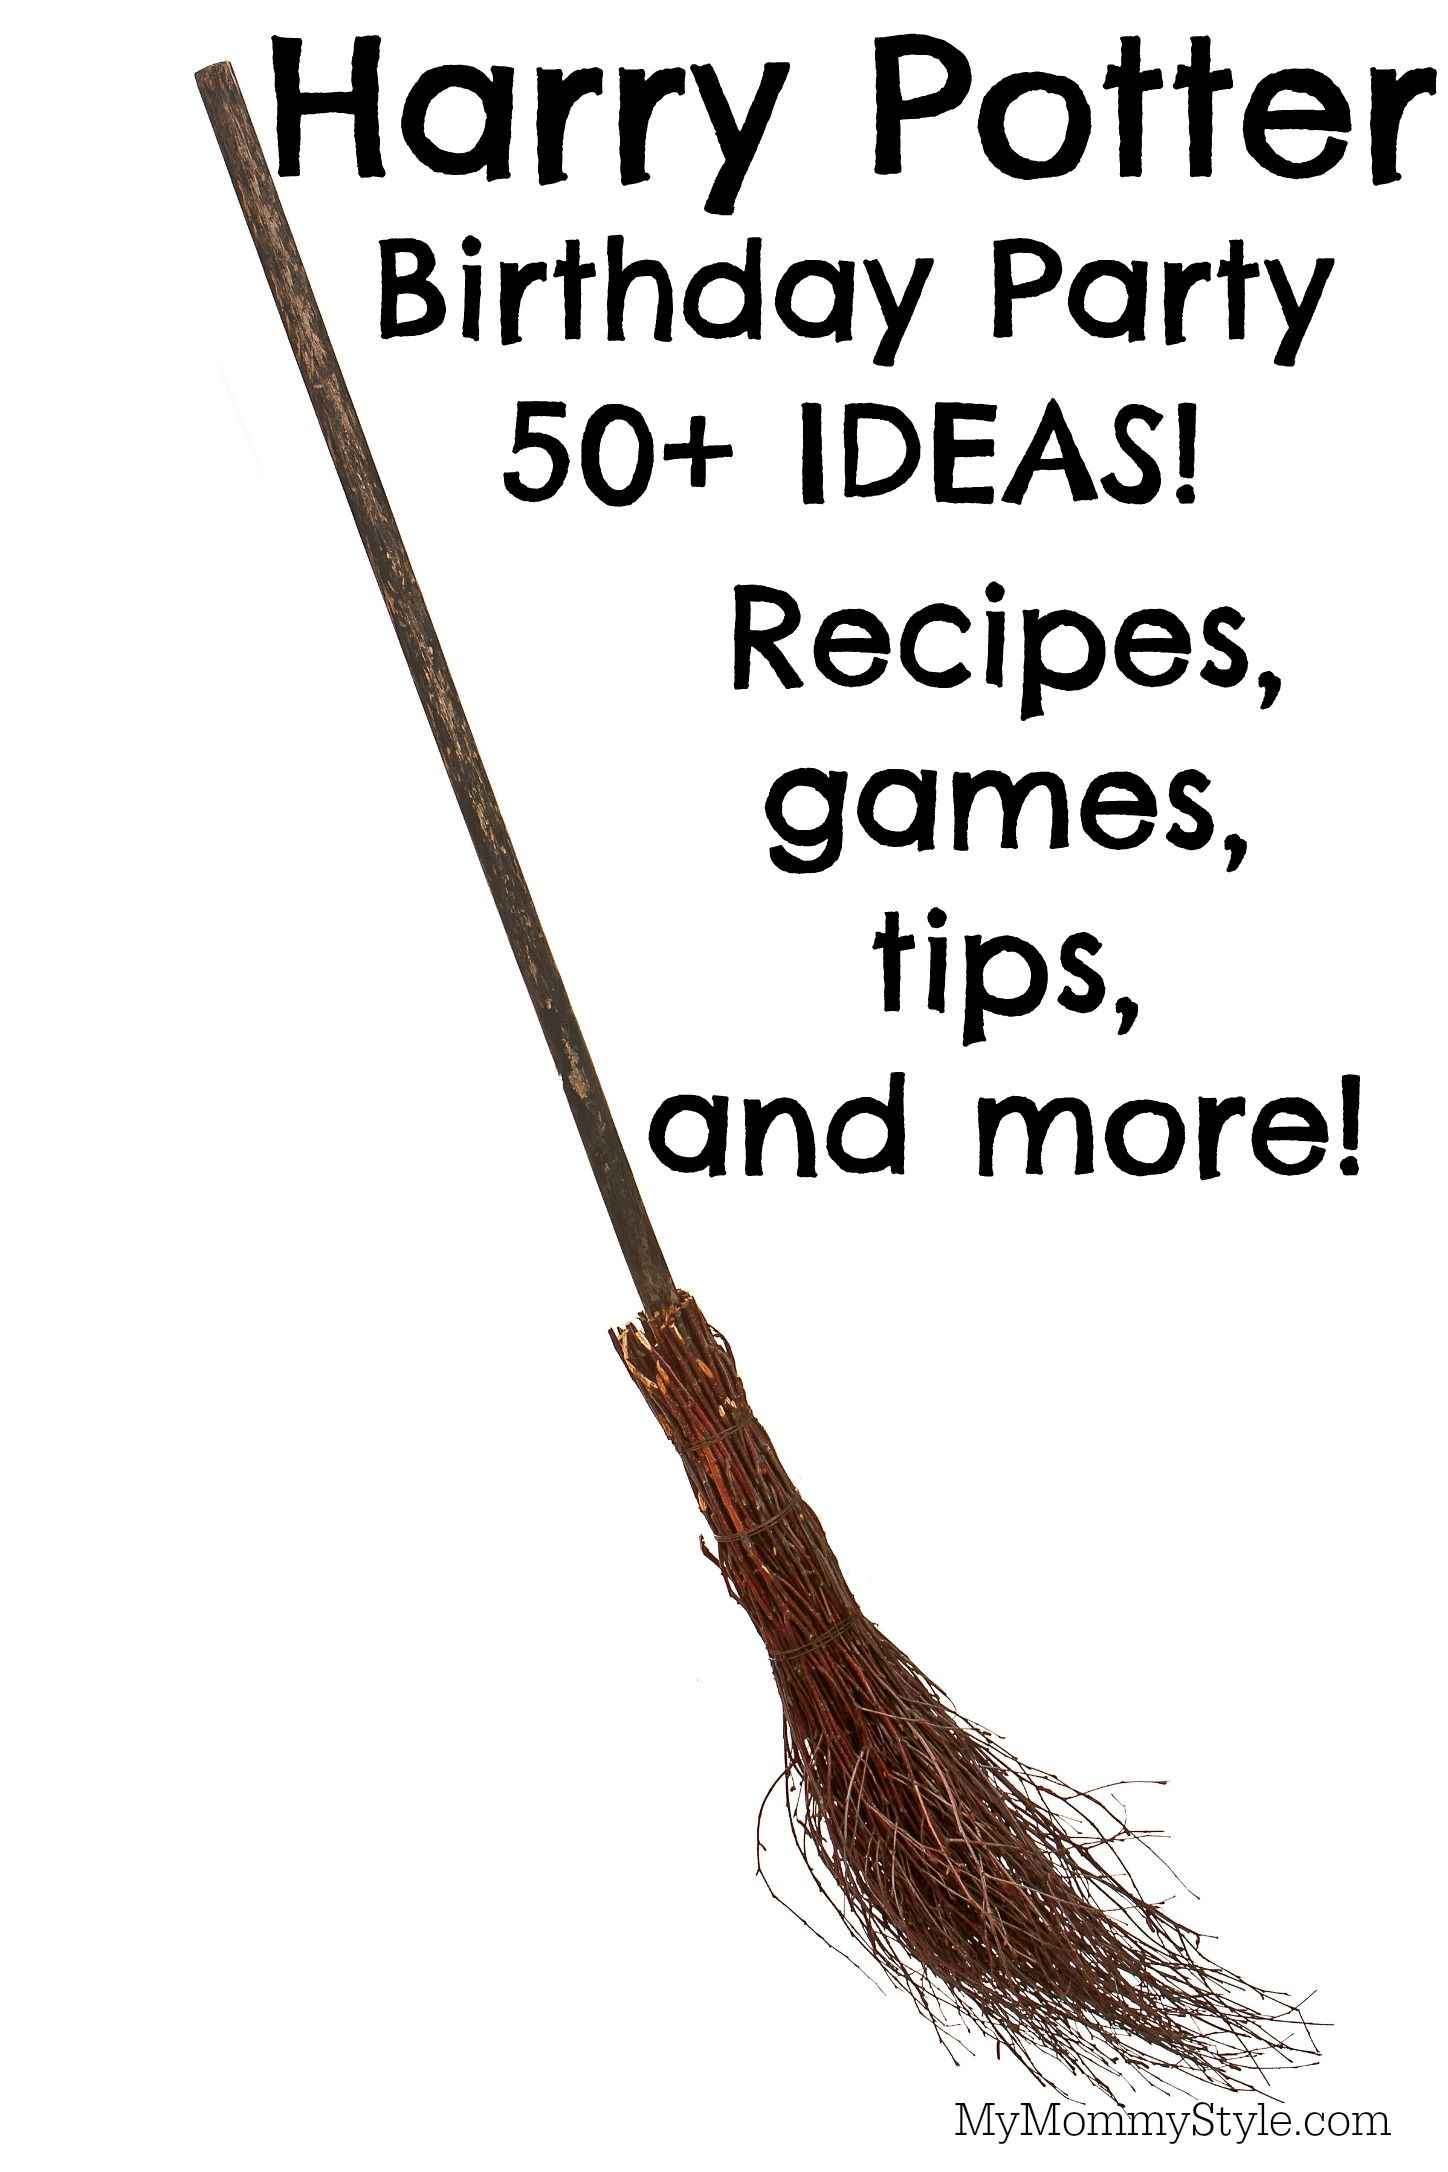 Planning a Harry Potter Birthday Party: Recipes, Tips, and more ...